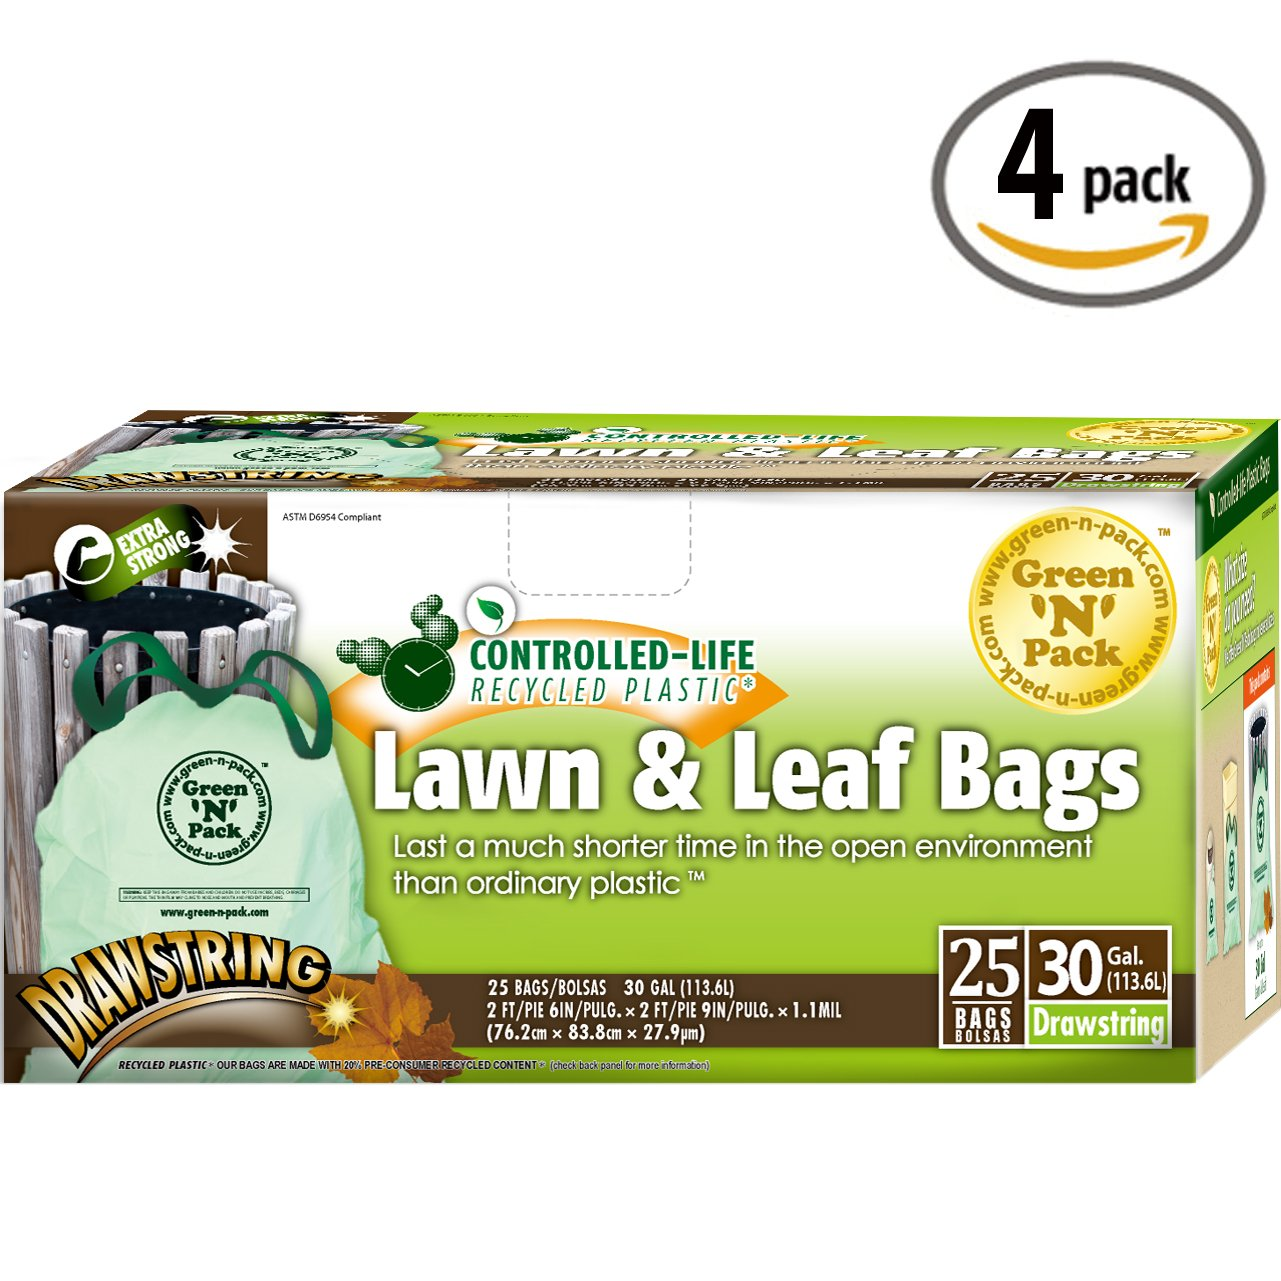 Green-n-Pack Lawn & Leaf Bags, Drawstring, 30 Gallon, 25-Count 002183